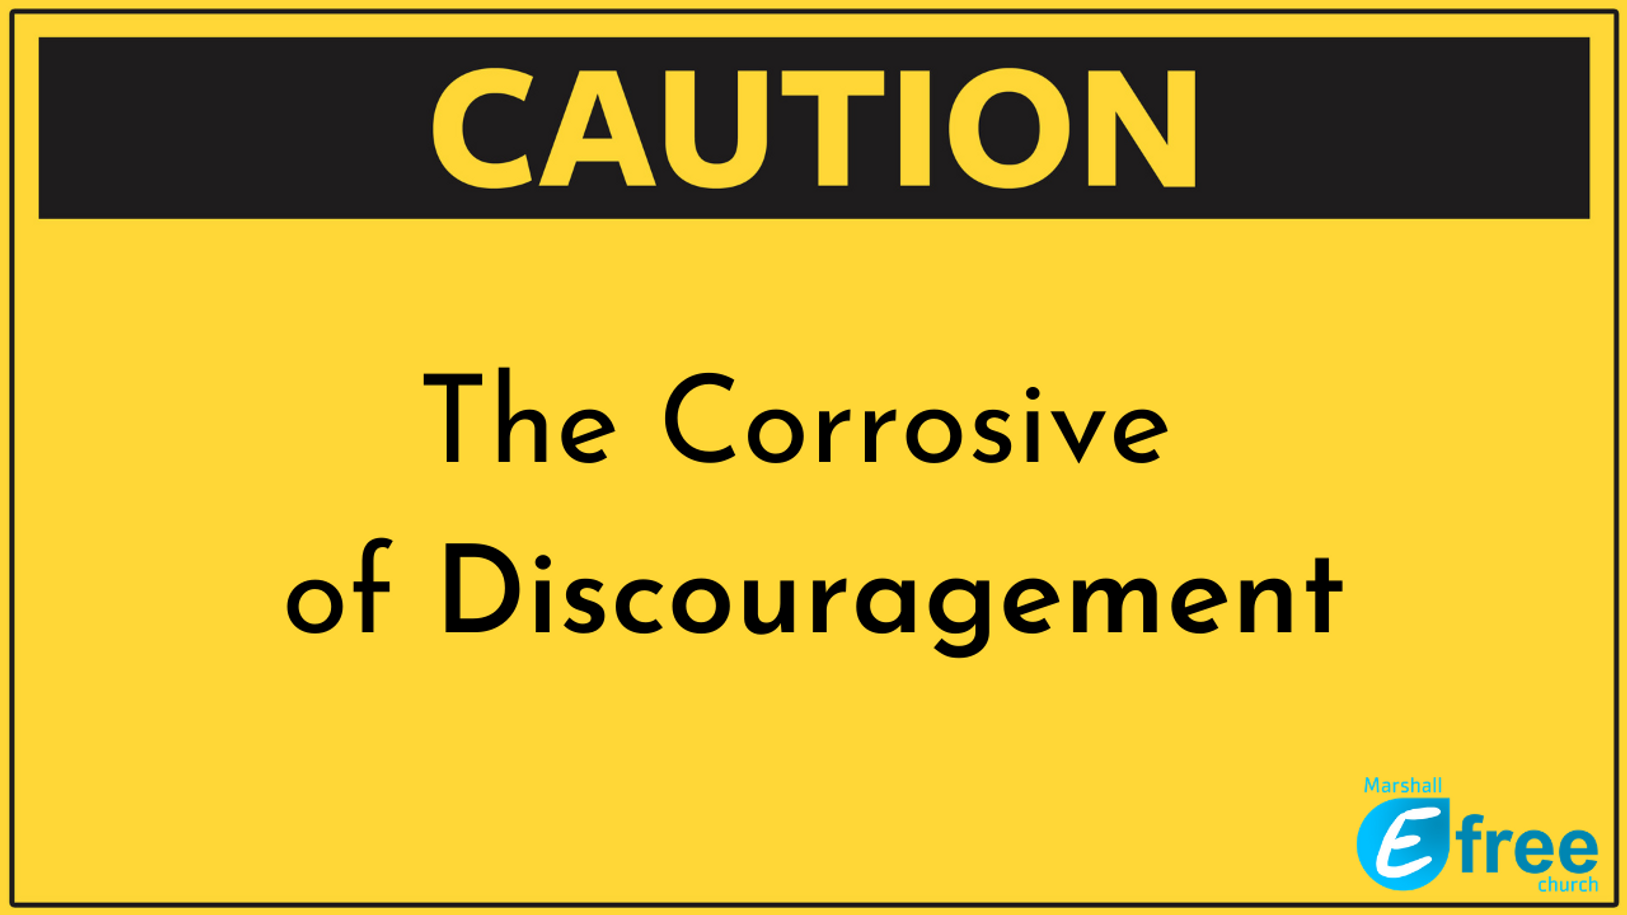 The Corrosion of Discouragement